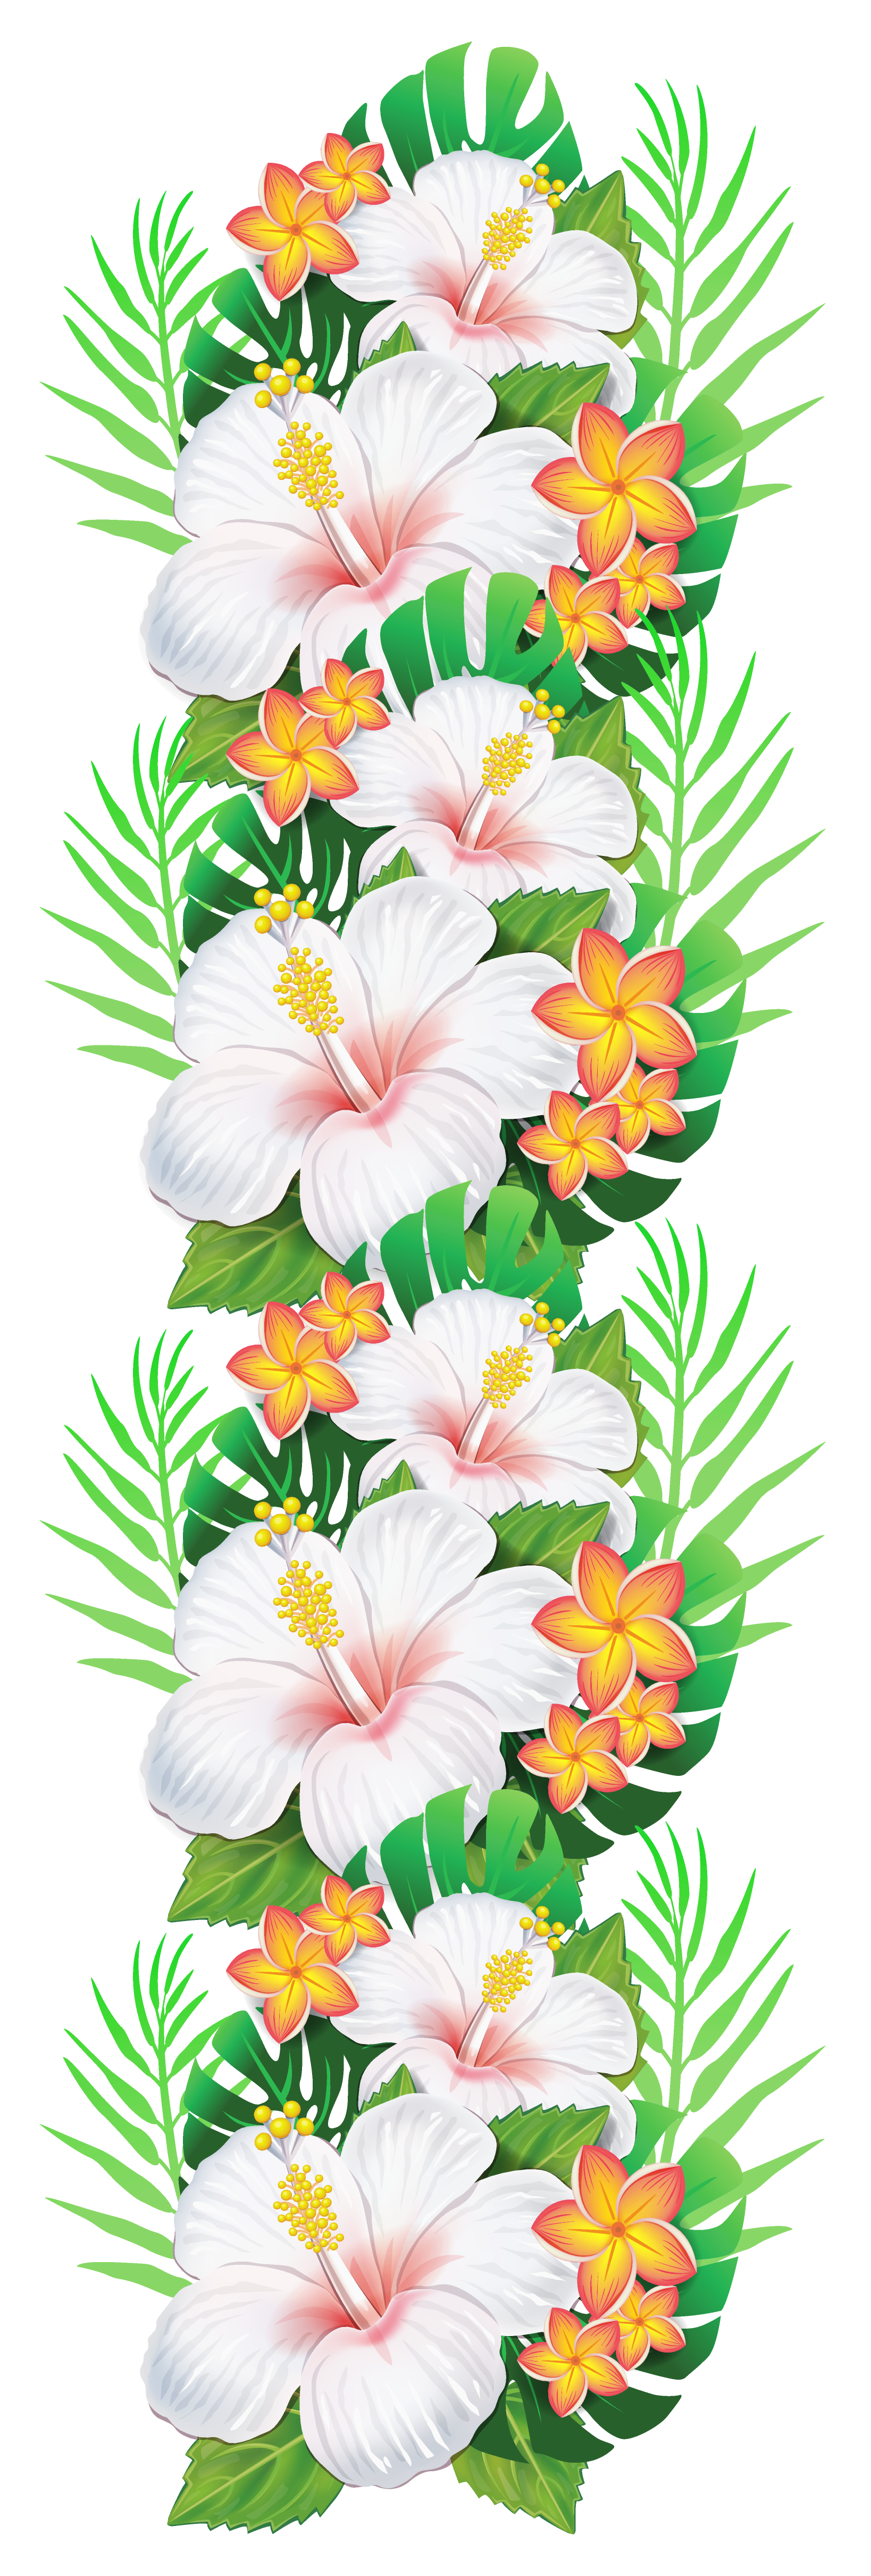 Curtains clipart flower. White exotic flowers decoration